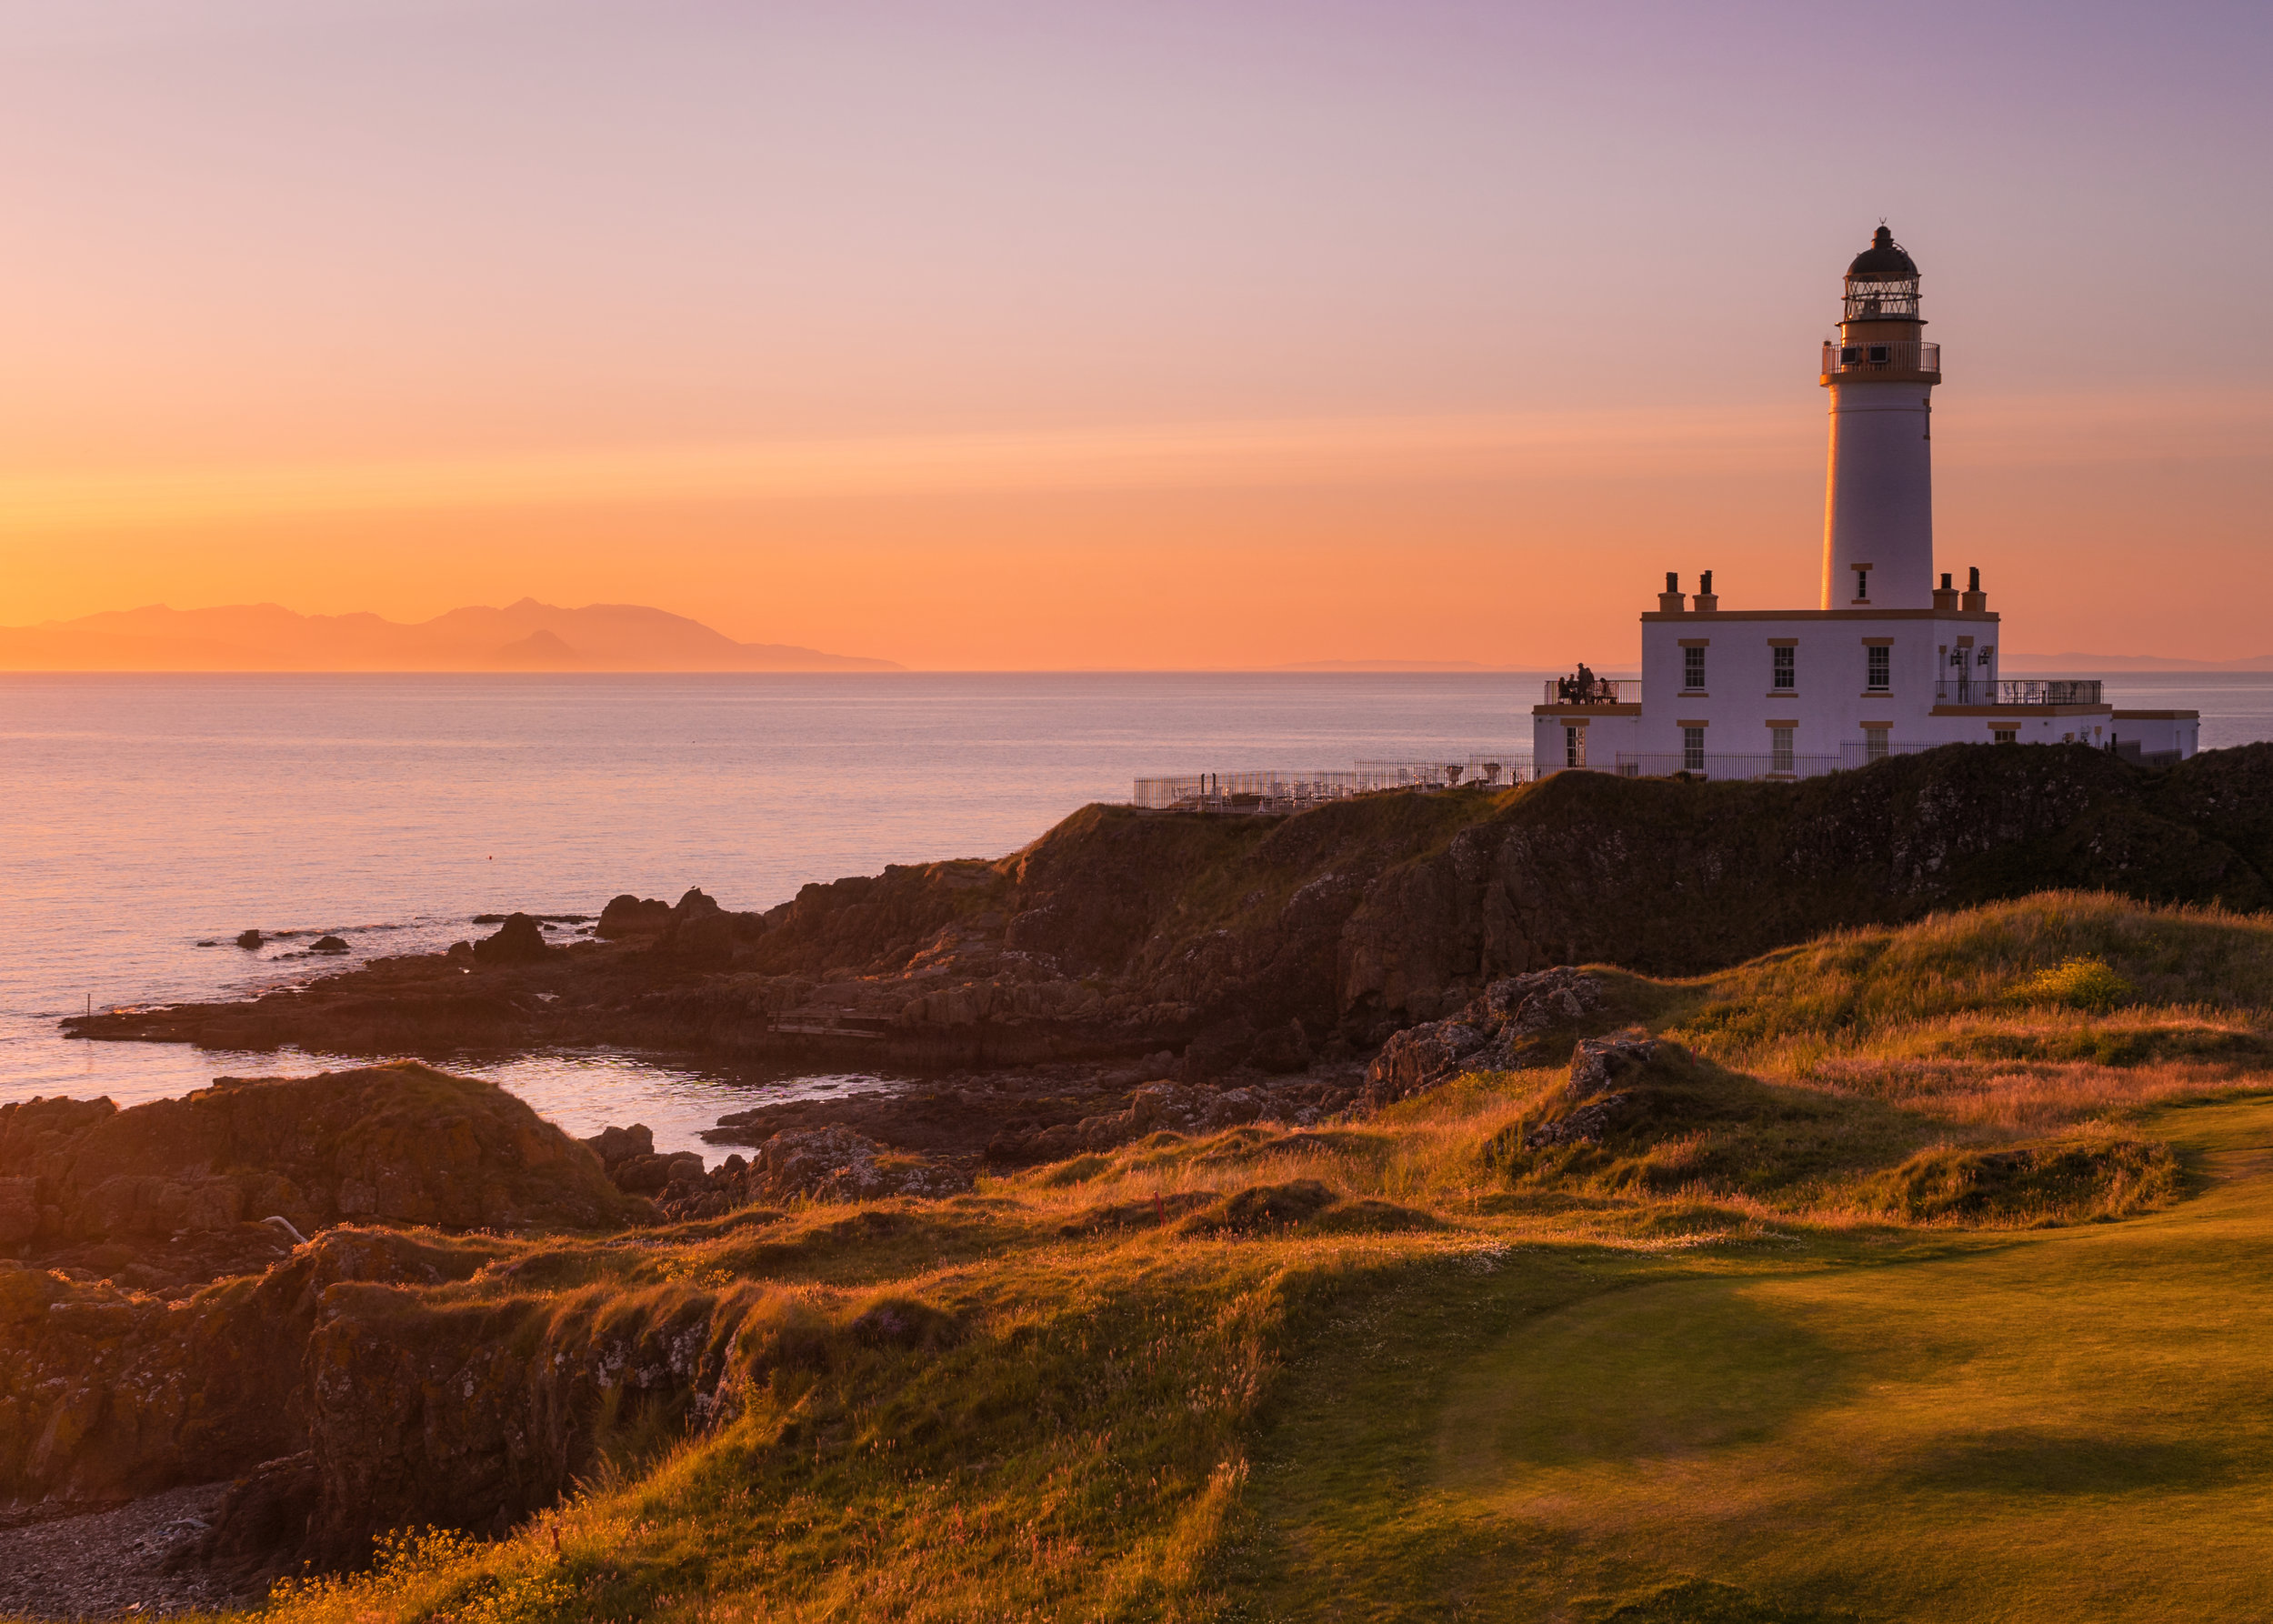 'An Evening at Turnberry Lighthouse'